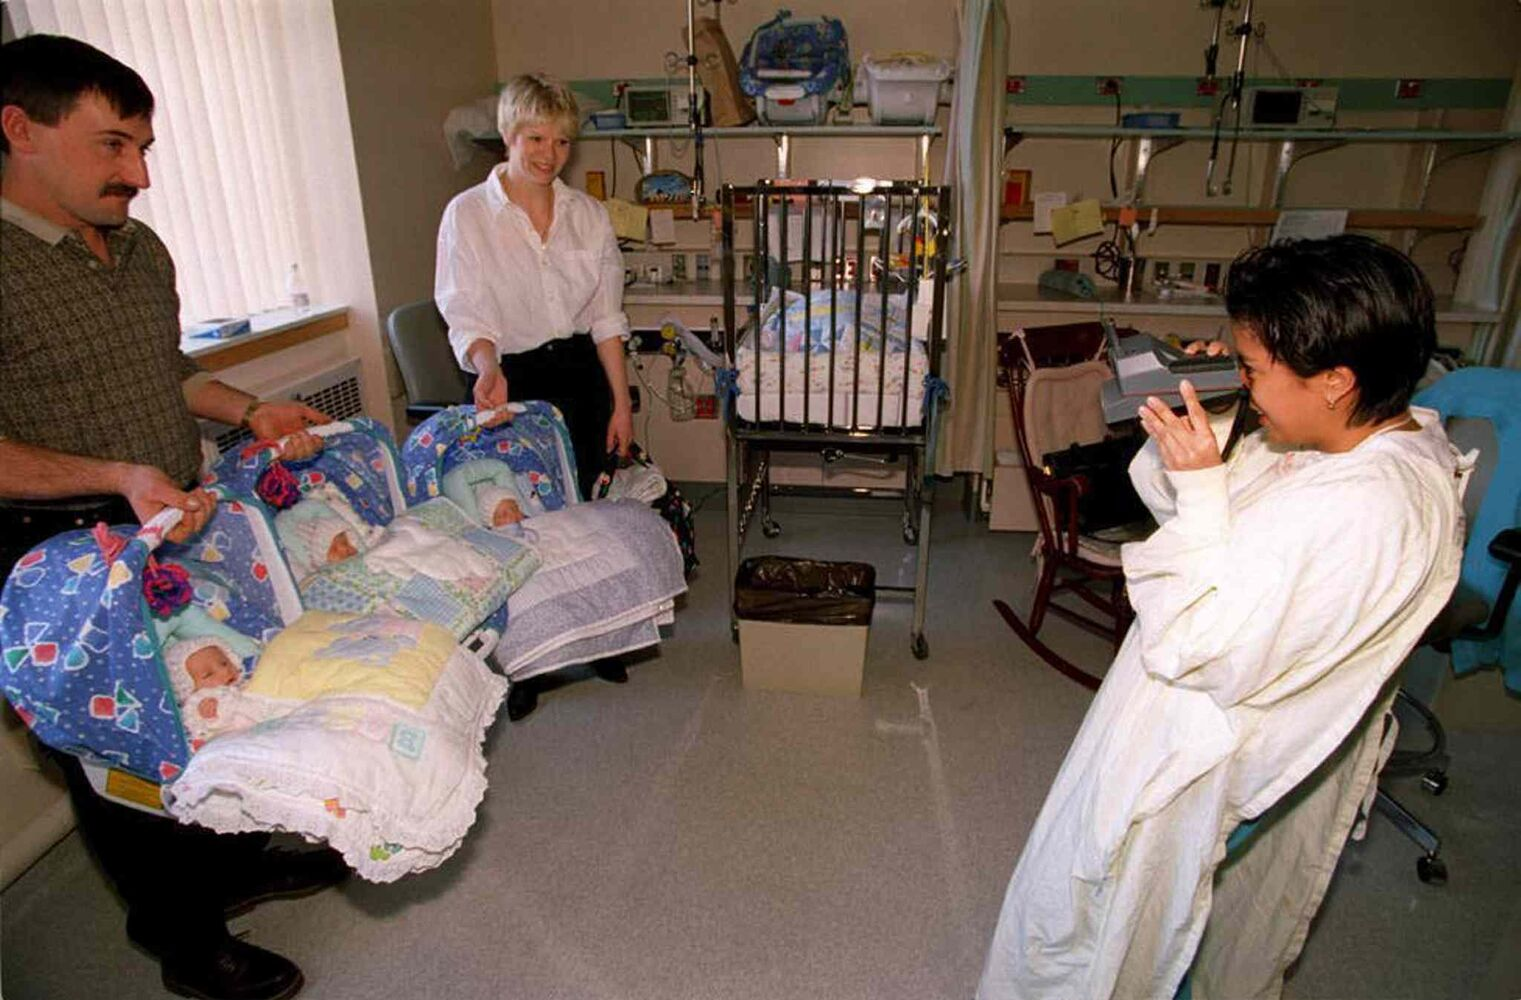 Three of the four quadruplets are discharged from the hospital in early October 1996. Nurse Jennifer Ponce, who took care of them, takes a few snaps of Heather and Ed Lavich with the three just before they leave. The fourth quadruplet, Myles, stays behind for a few more days. (JEFF DE BOOY / WINNIPEG FREE PRESS FILES)